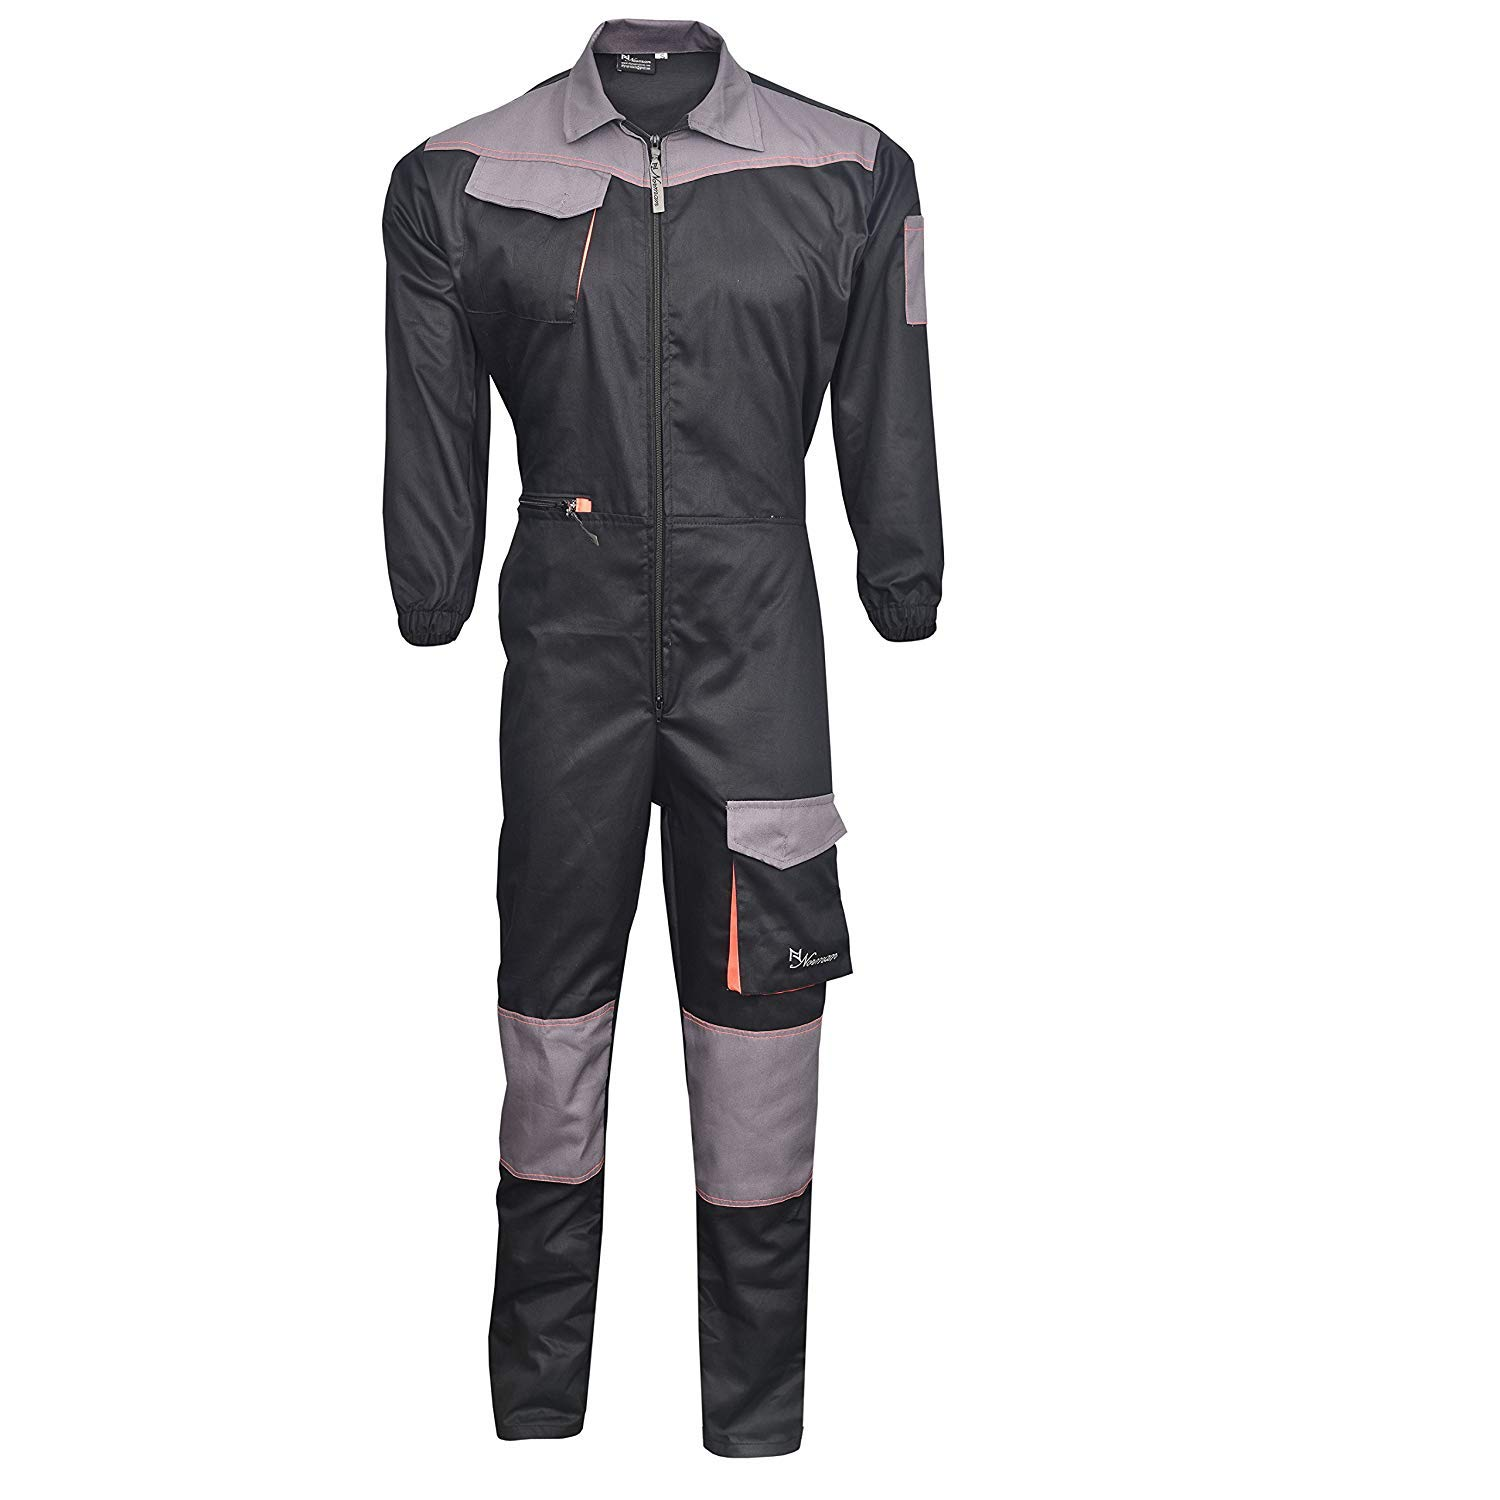 NORMAN Grey Mens Coveralls Boiler Suit Overalls for Warehouse Garages Workers Mechanics